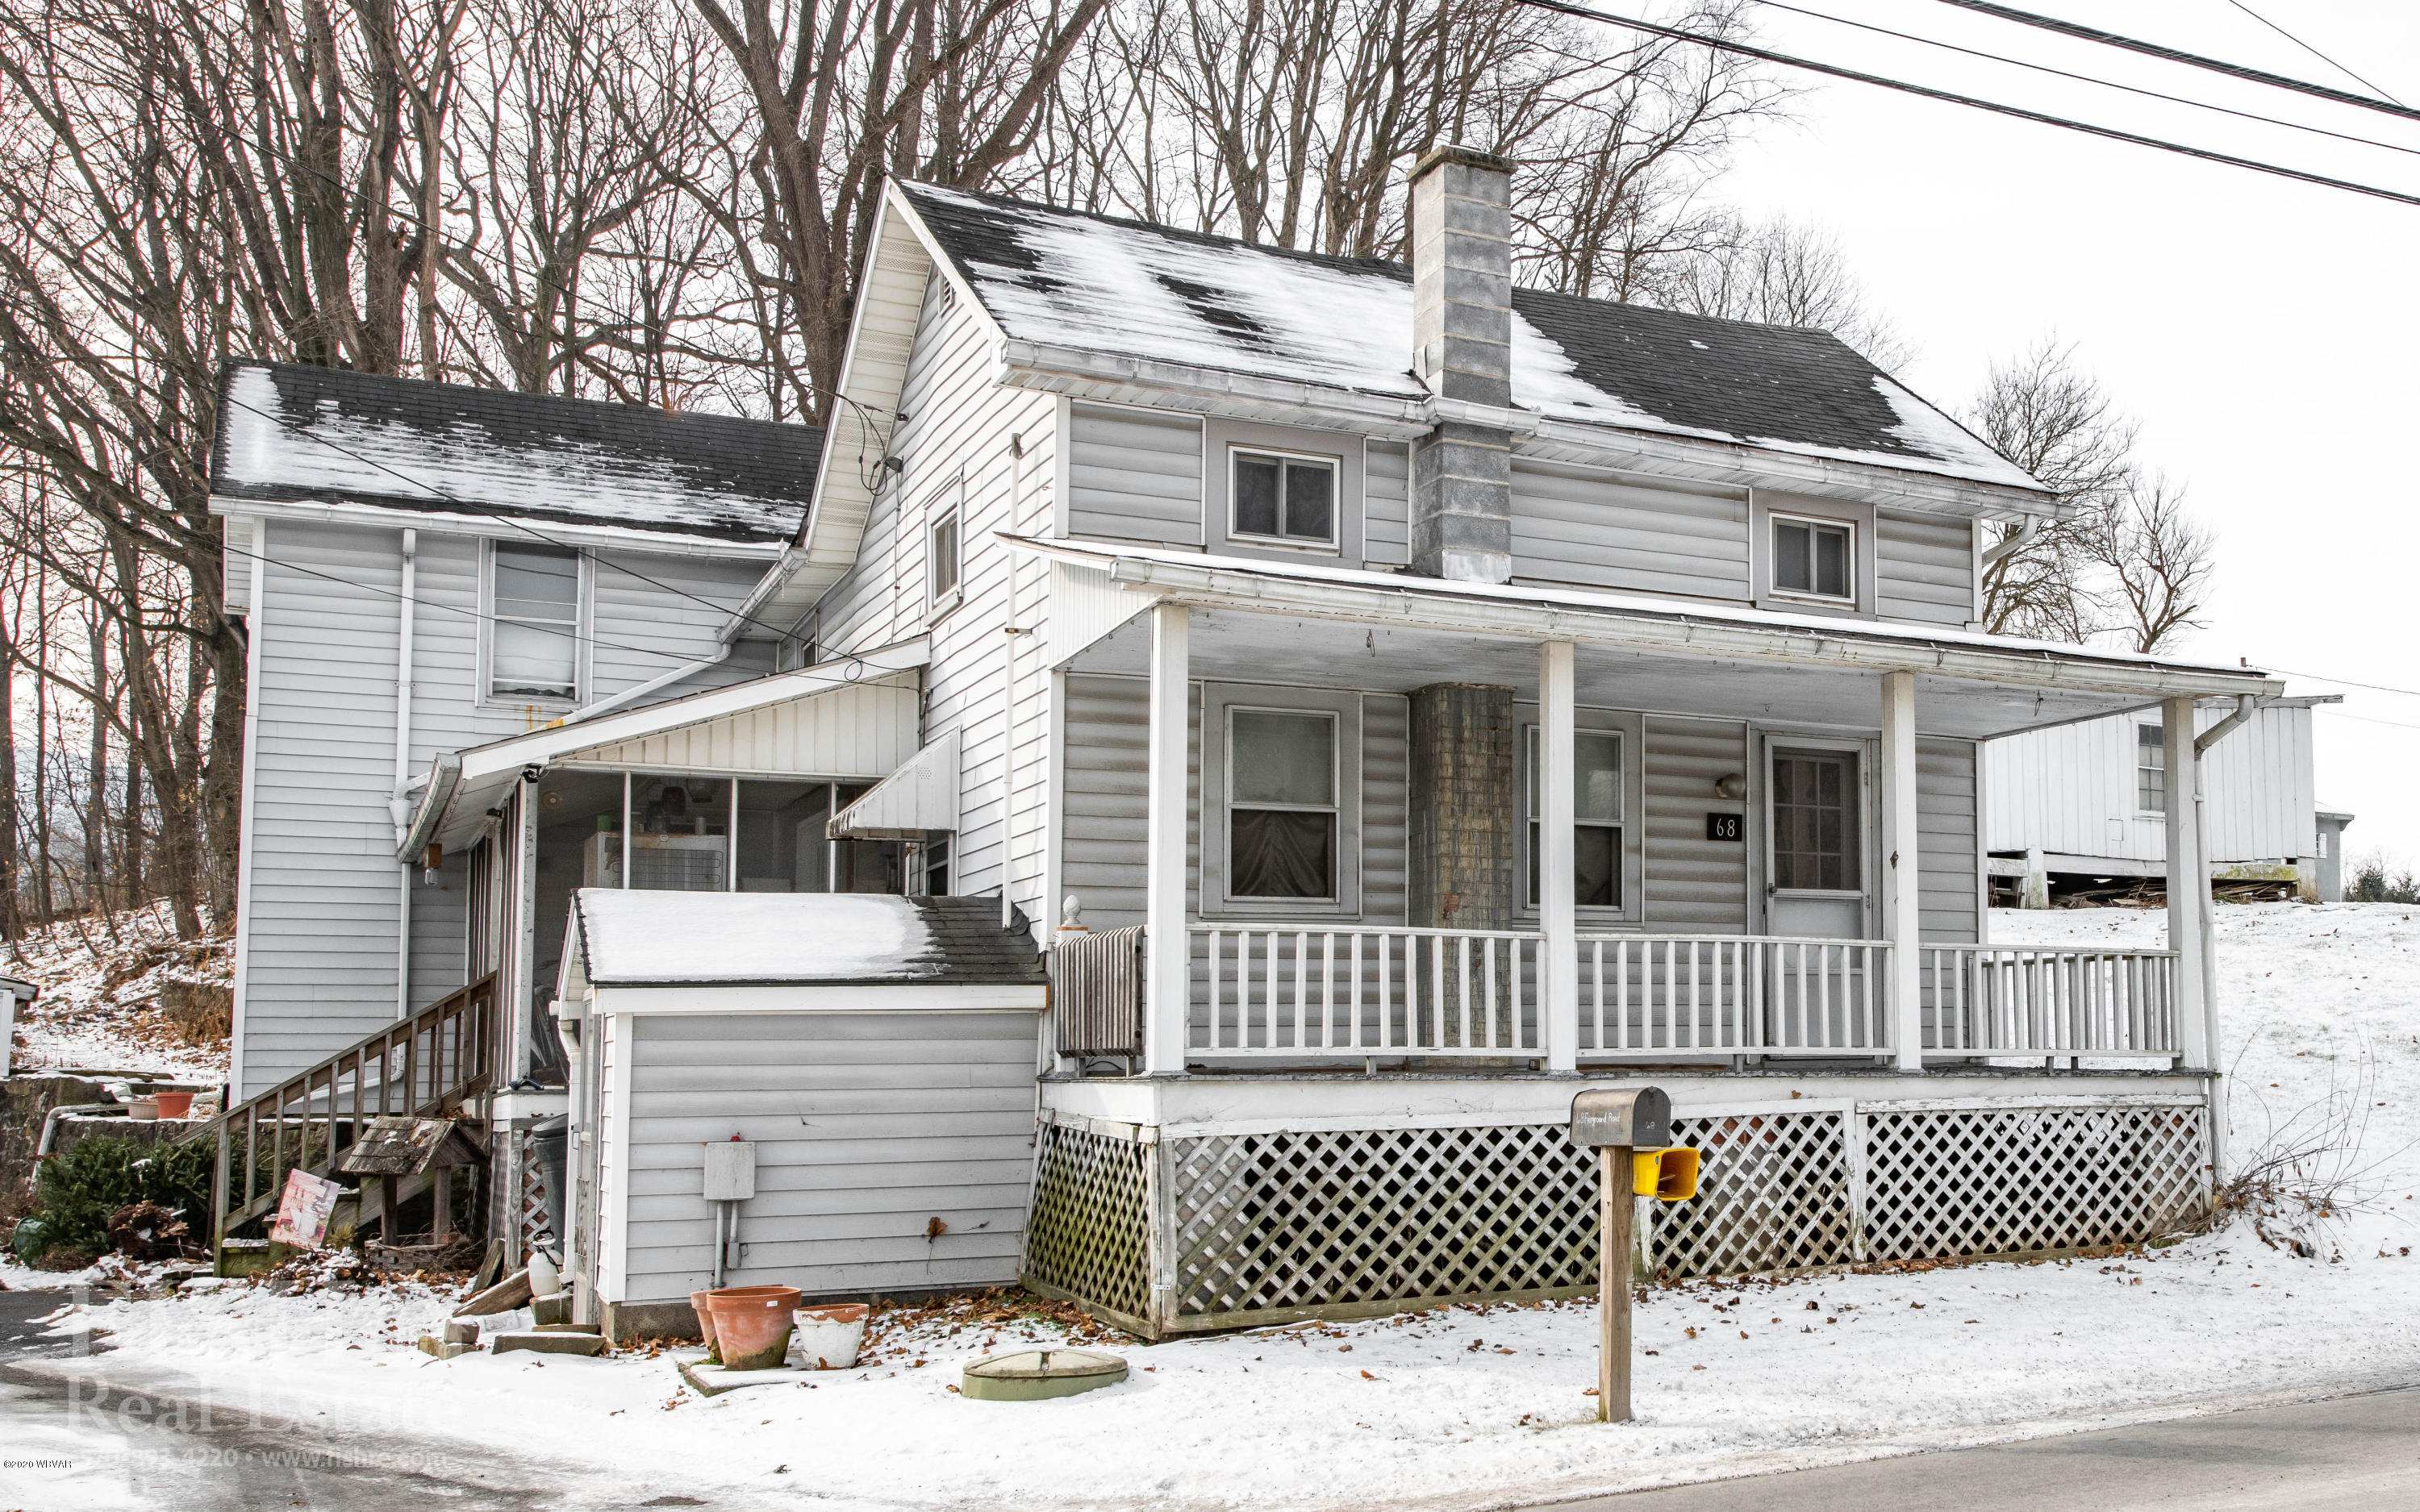 68 FAIRGROUND ROAD,Mackeyville,PA 17750,3 Bedrooms Bedrooms,2 BathroomsBathrooms,Residential,FAIRGROUND,WB-89436